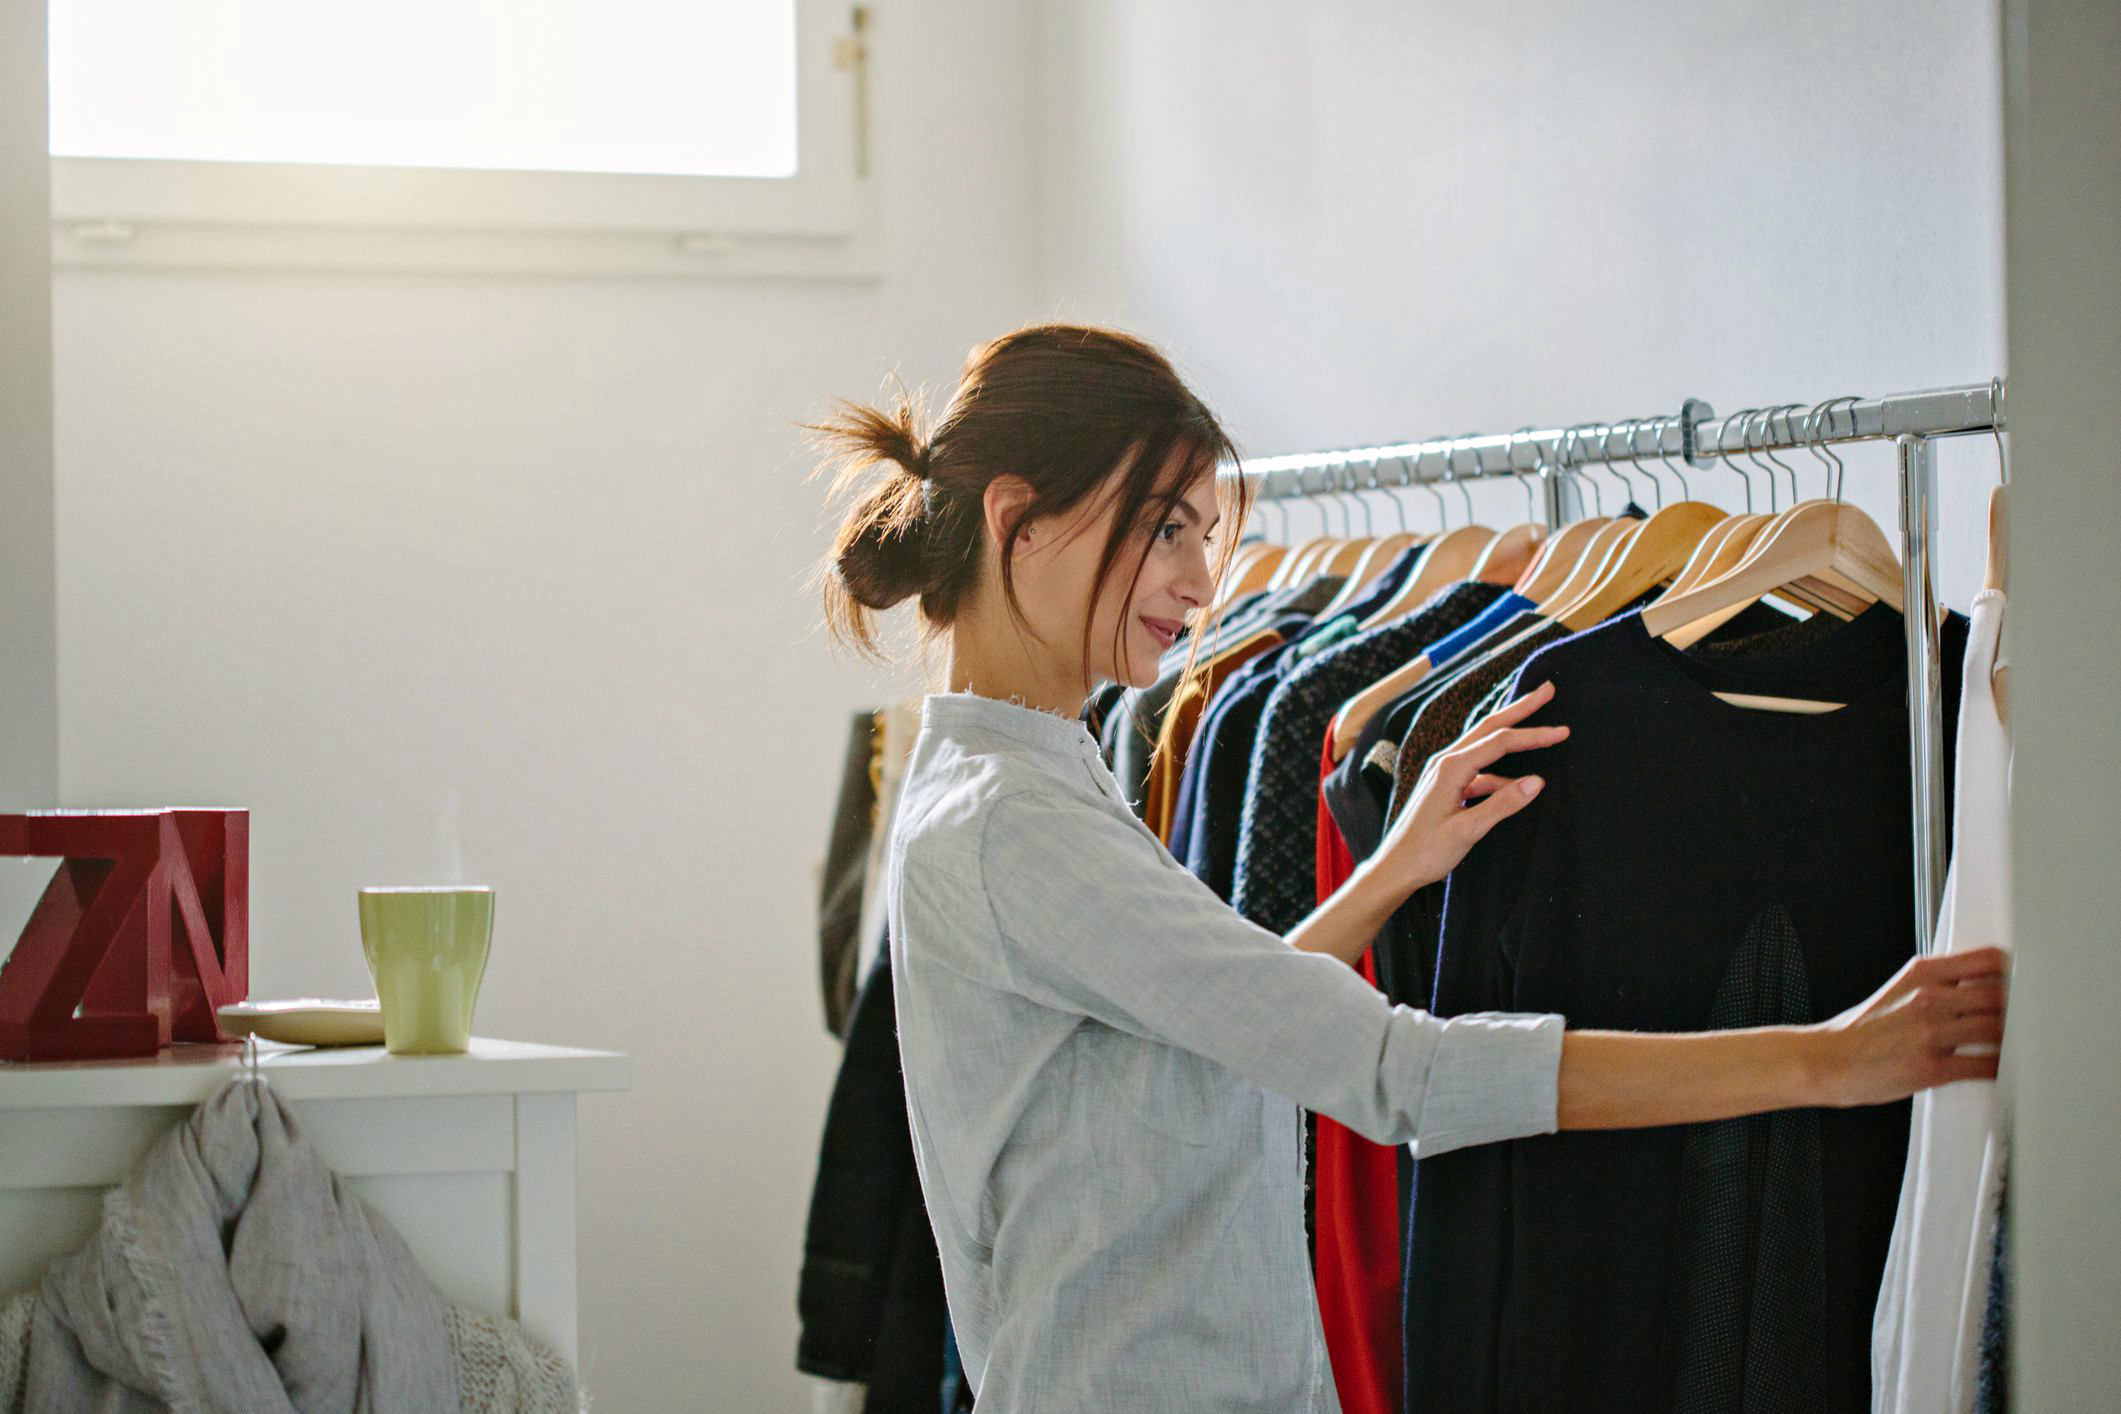 https://admin.lady-4-lady.ru/wp-content/uploads/2018/08/how-to-maximize-your-closet-storage-9.jpg